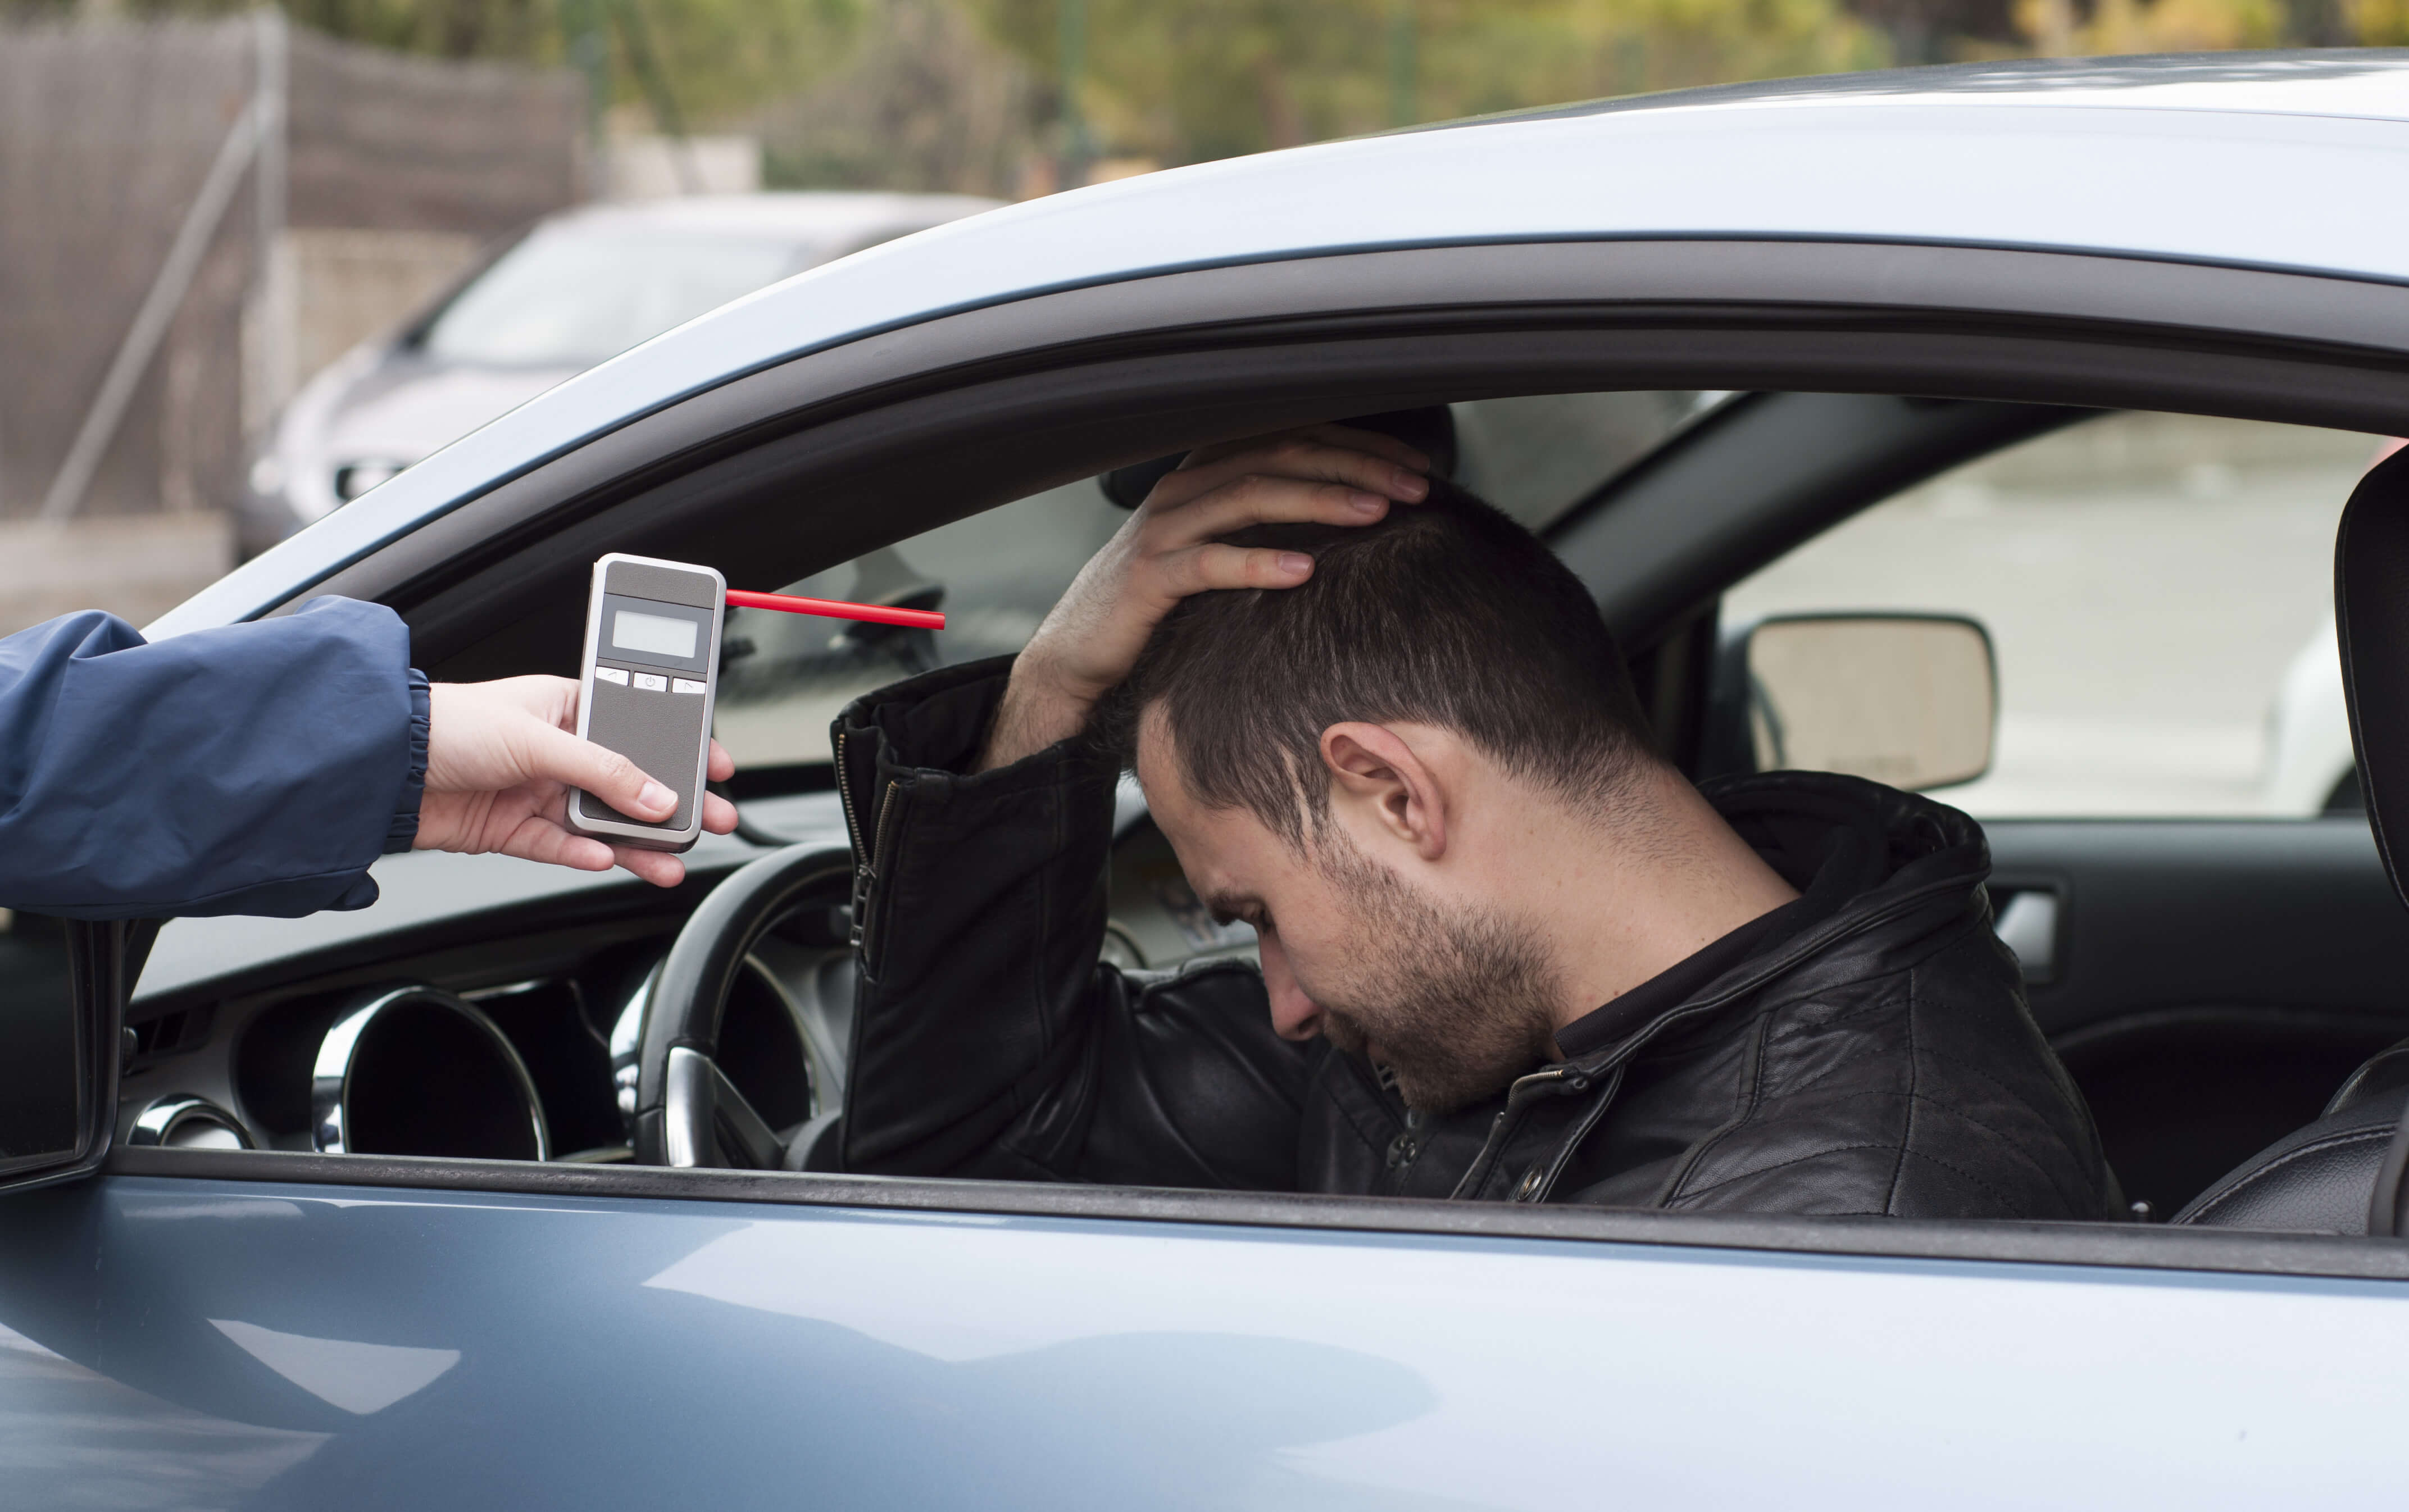 Drunk male driver behind the wheel of car being presented with breathalyzer device by police officer